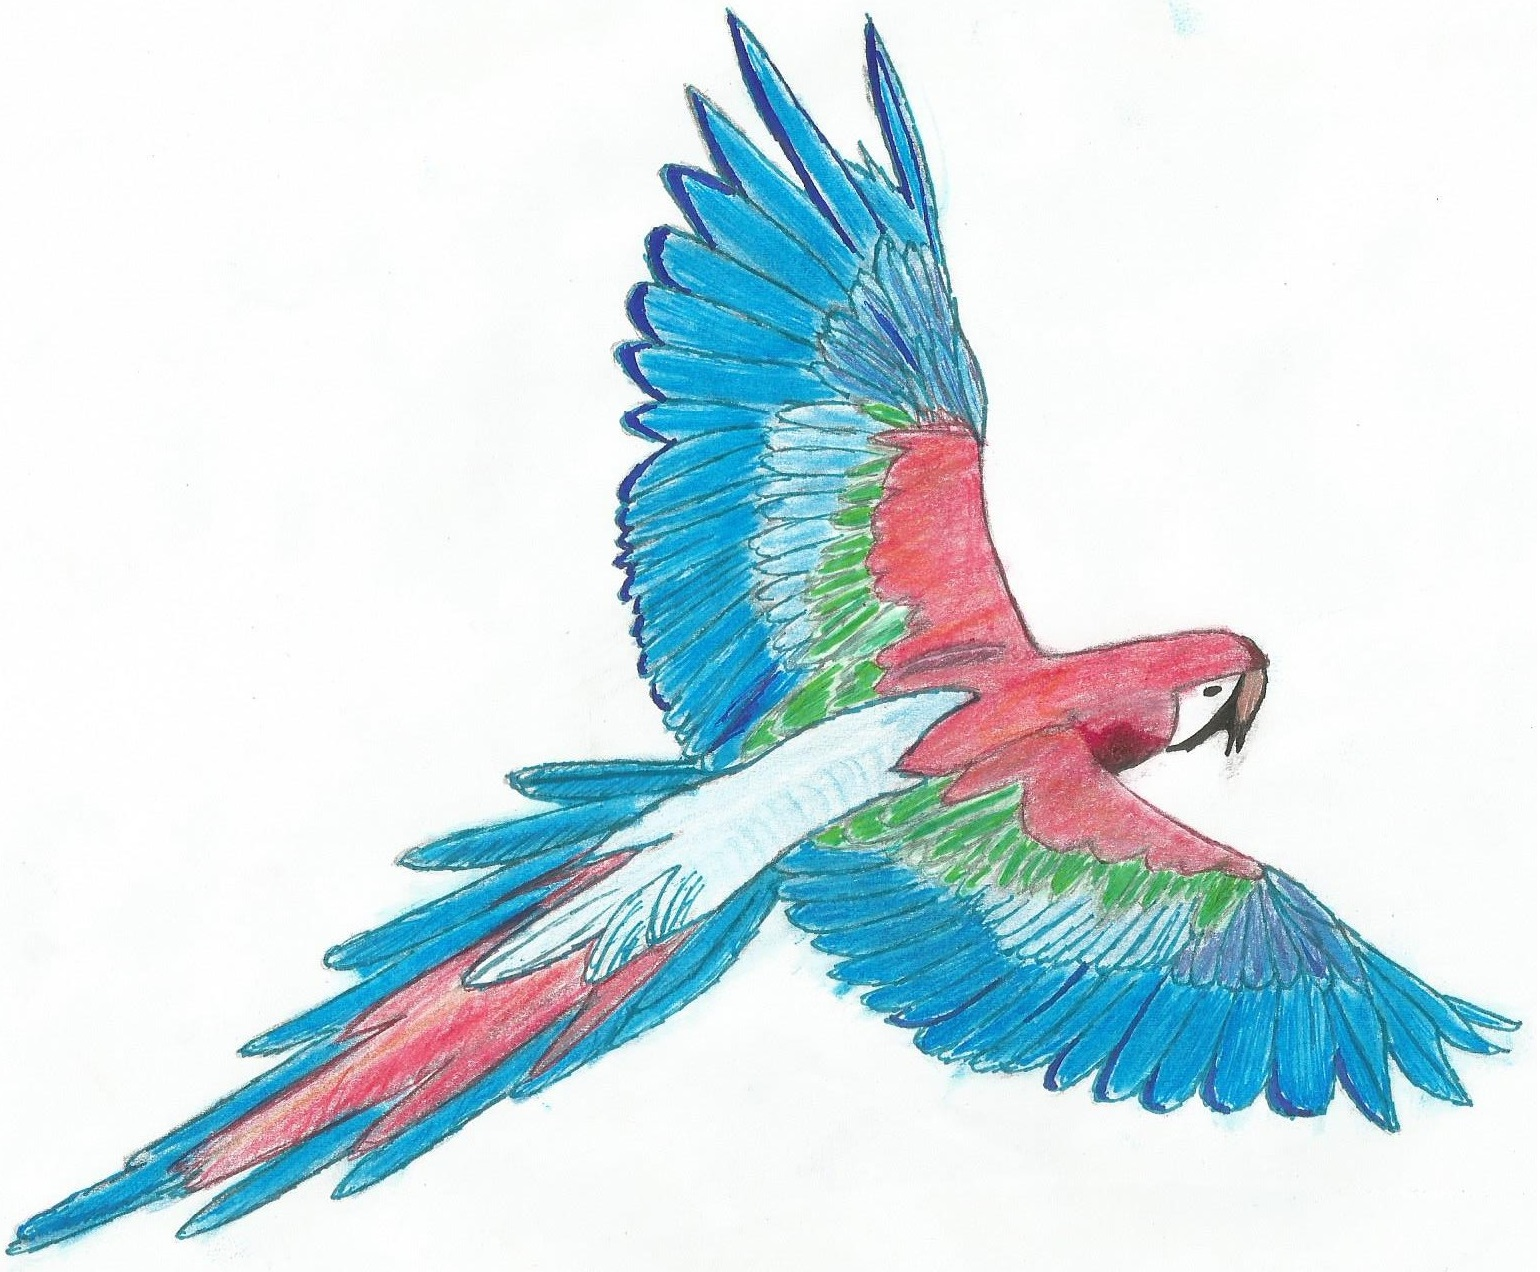 Uncategorized Drawing Of A Parrot drawing of a parrot by 3dphantom on deviantart 3dphantom